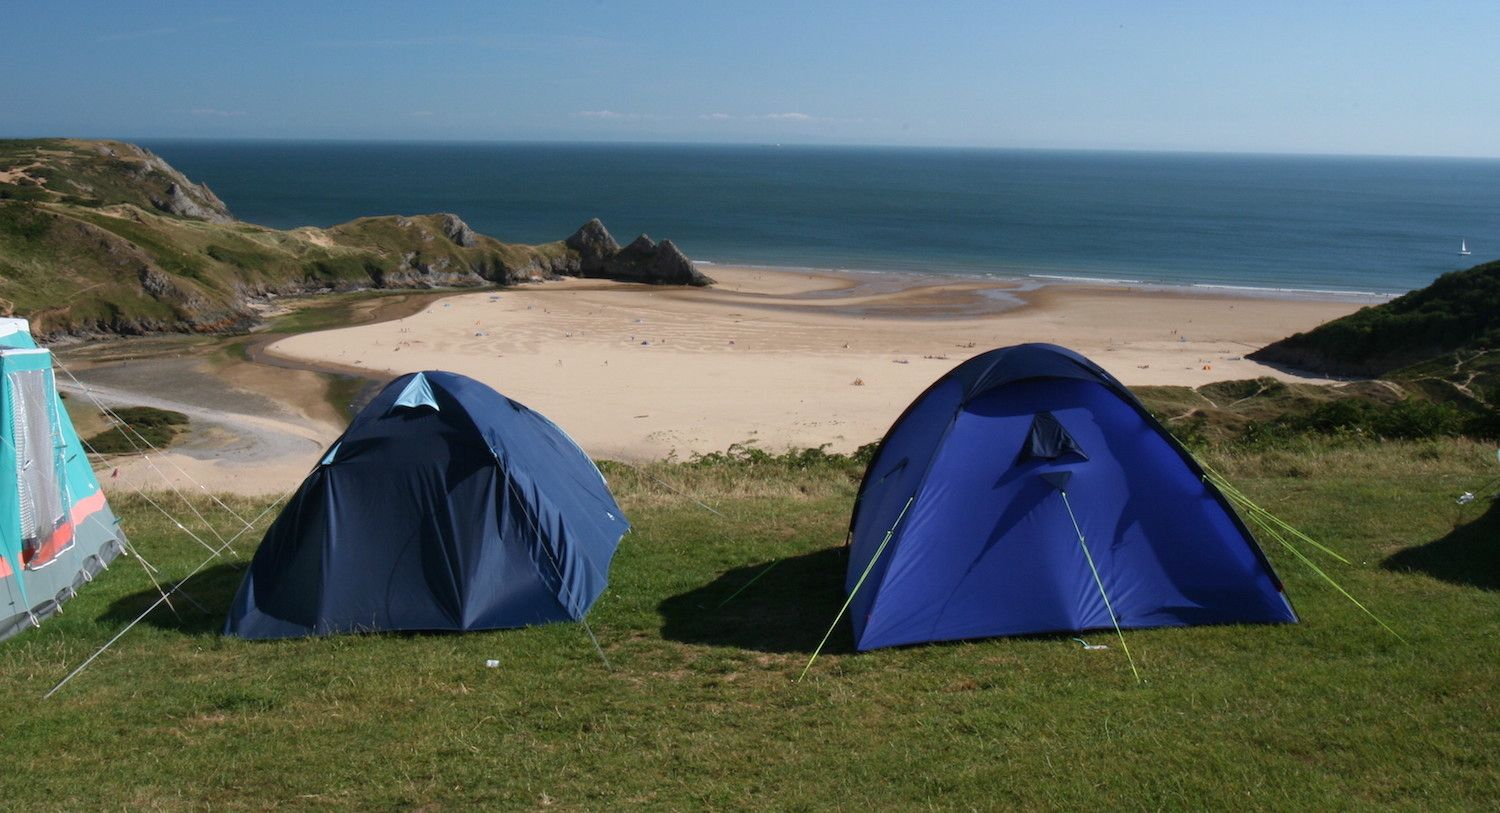 Cool Camping Campsites Amp Glamping In The UK And Europe